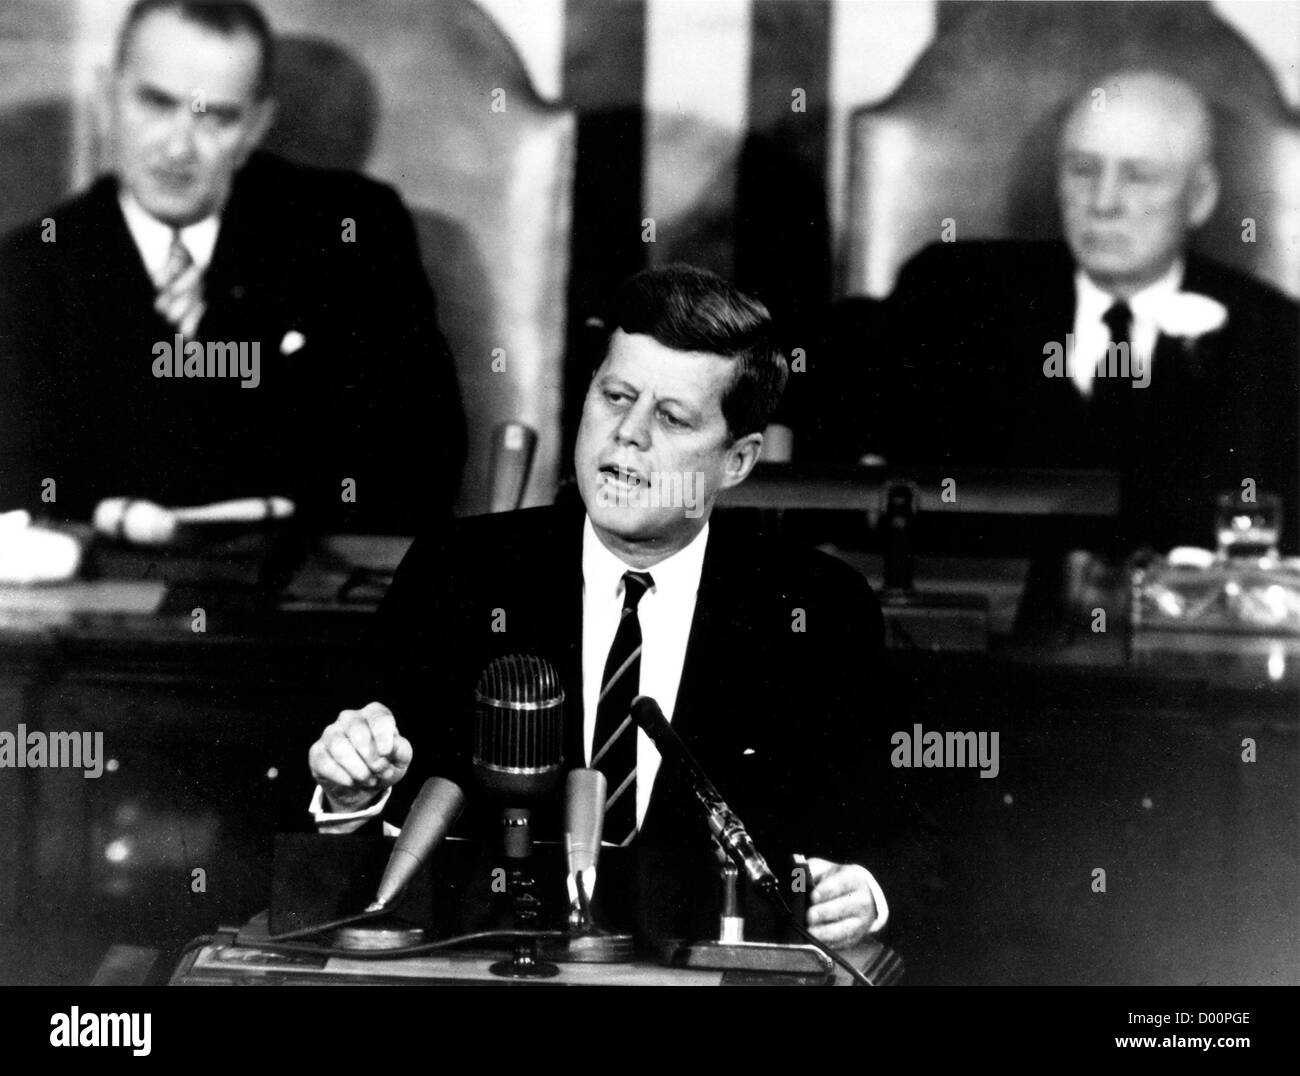 President John F Kennedy Giving Historic Speech - Stock Image